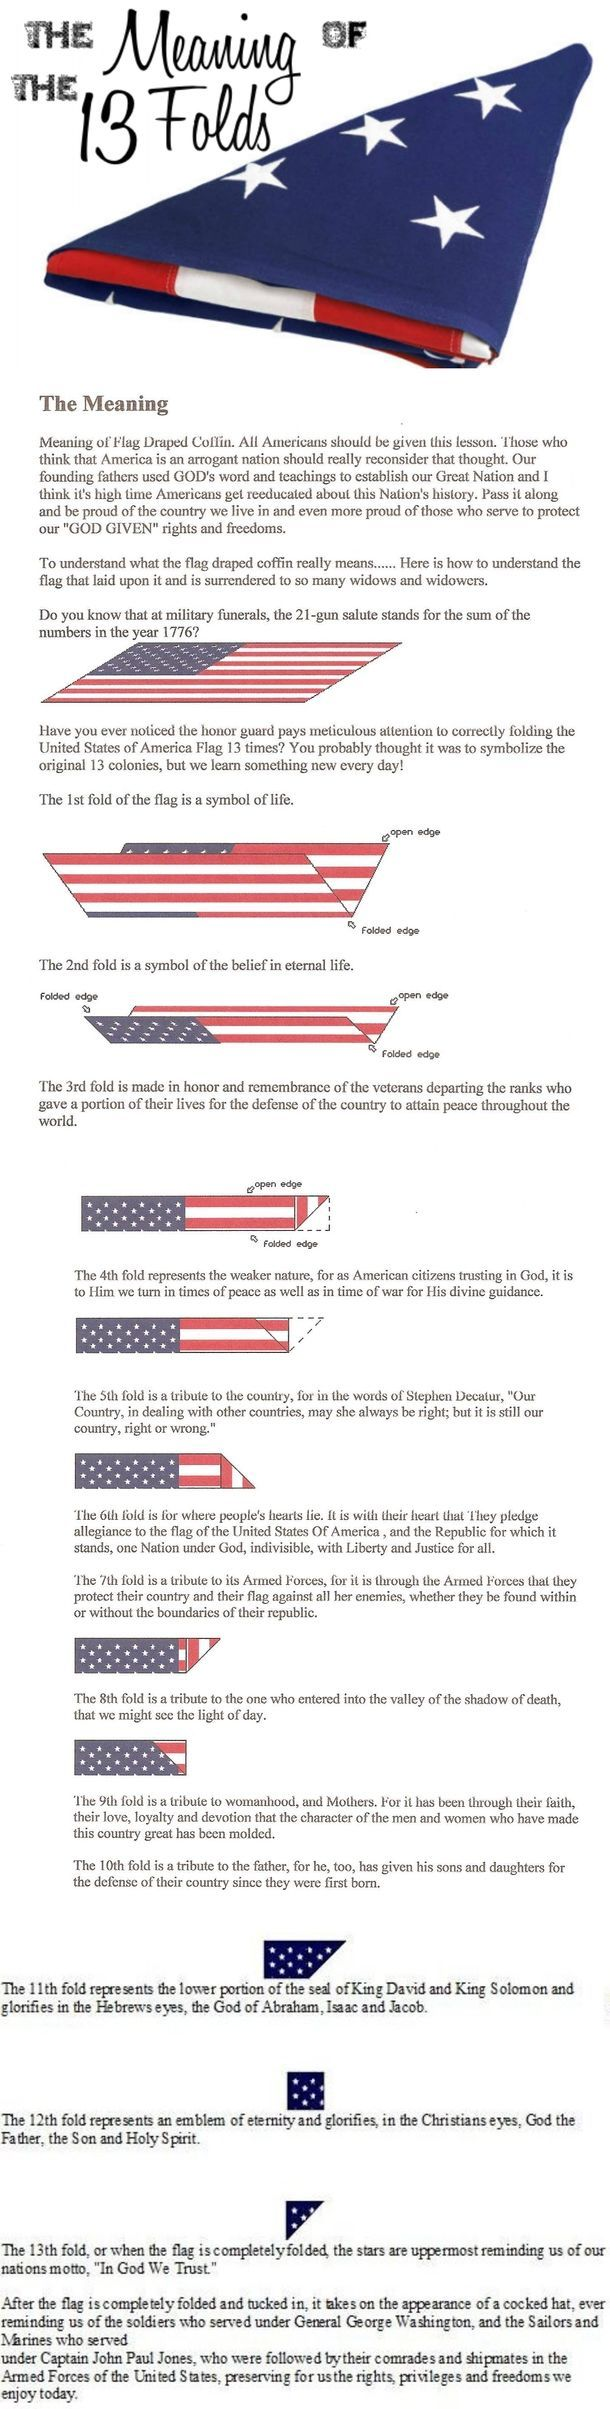 Do You Know The Reason Behind The Flag Folding? The United States Flag Is Folded 13 Times Because….